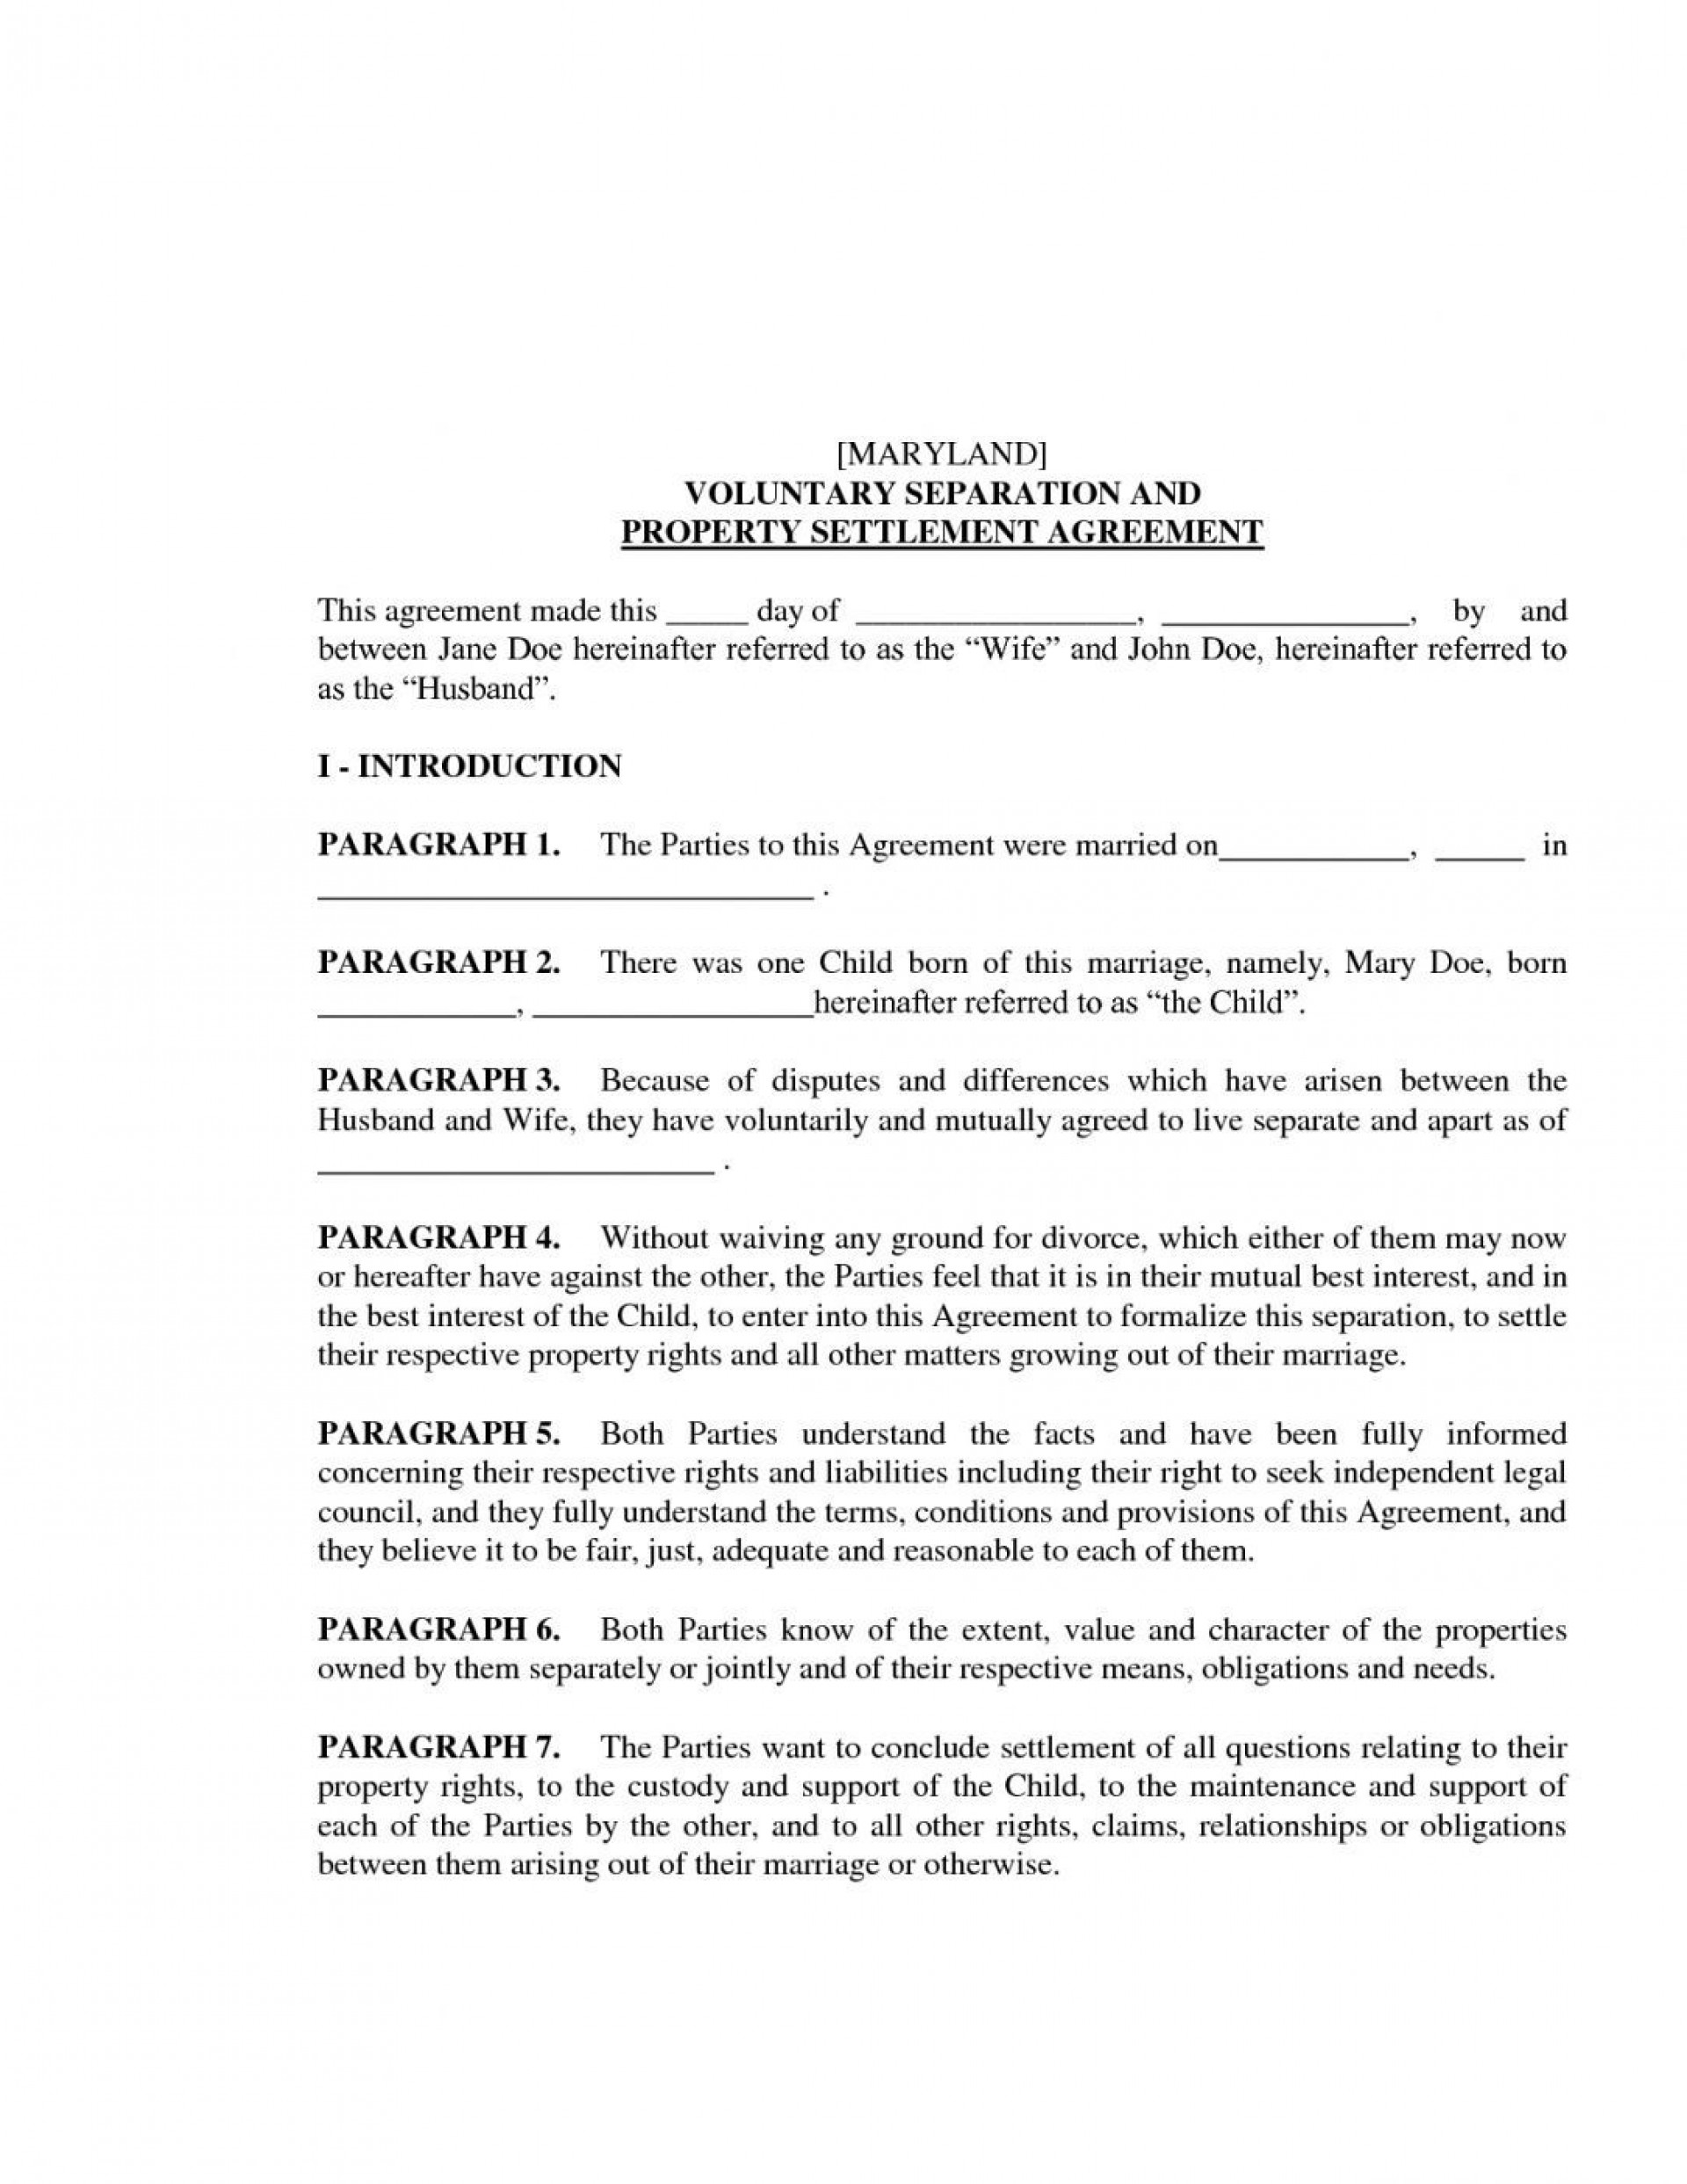 009 Archaicawful Divorce Settlement Agreement Template High Definition  Sample New York Marital Uk South Africa1920